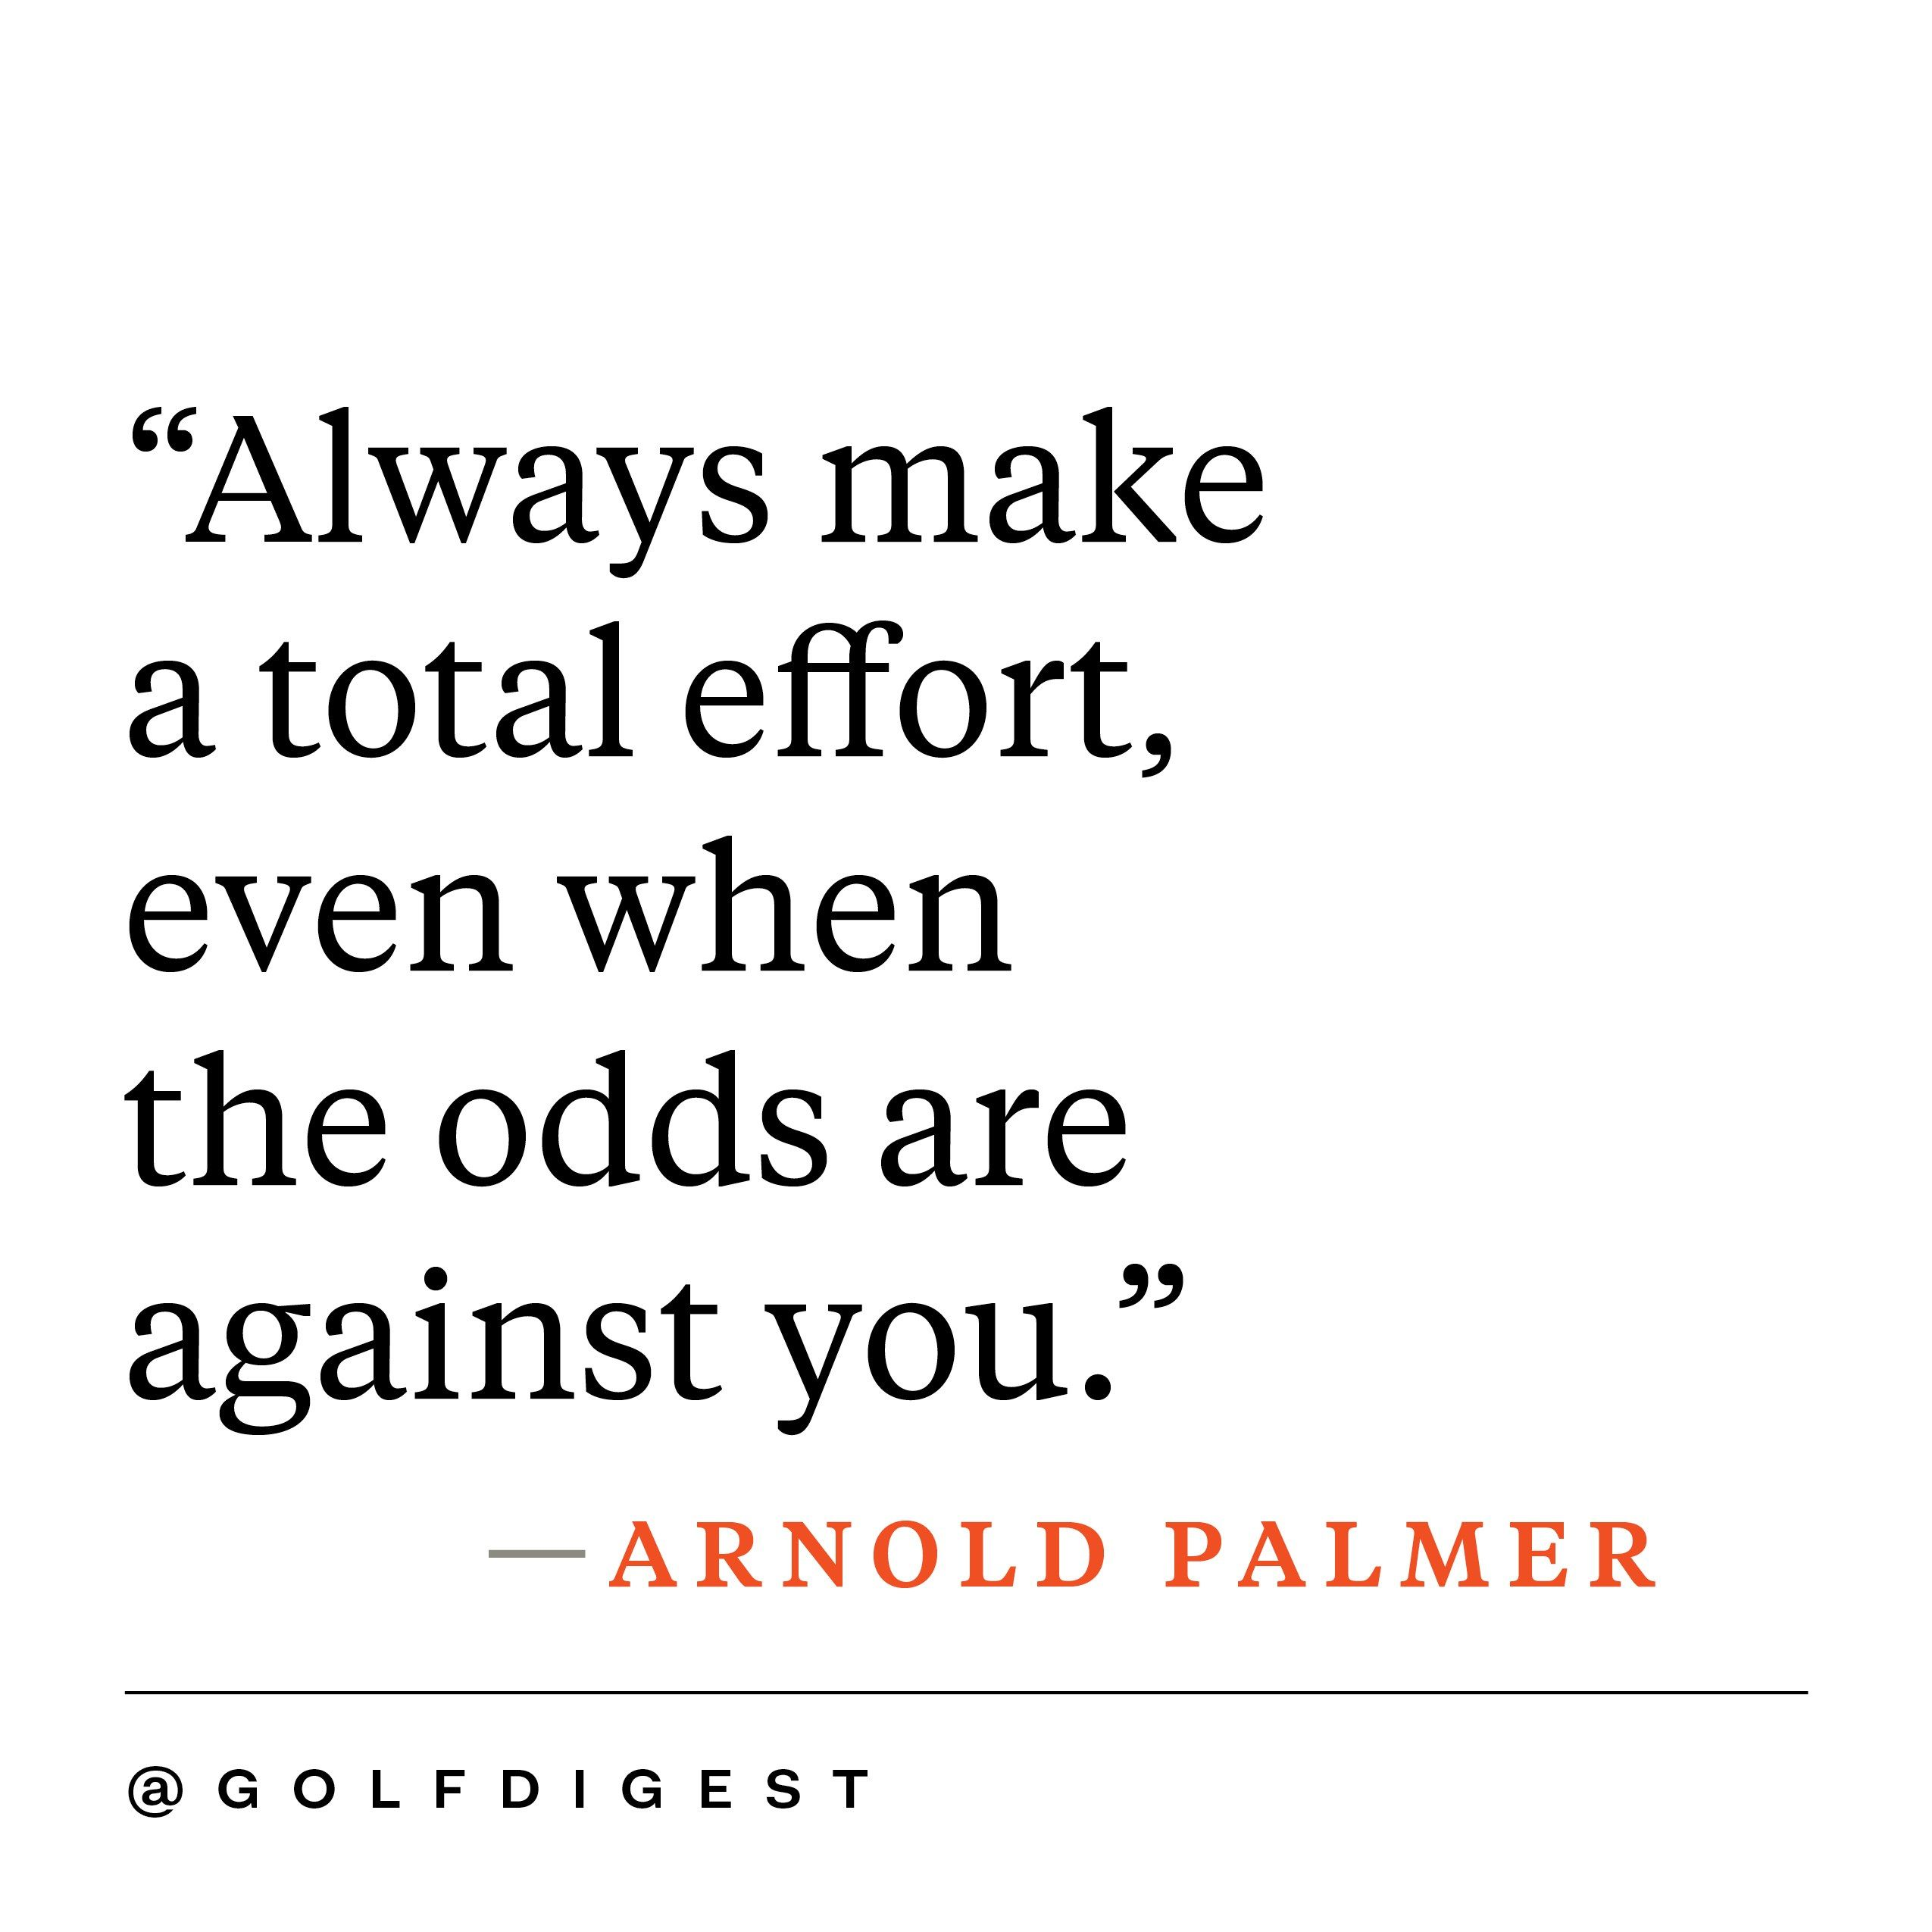 Inspirational Golf Quotes 21 Inspirational Golf Quotes Photos  Golf Digest  Golf Quotes